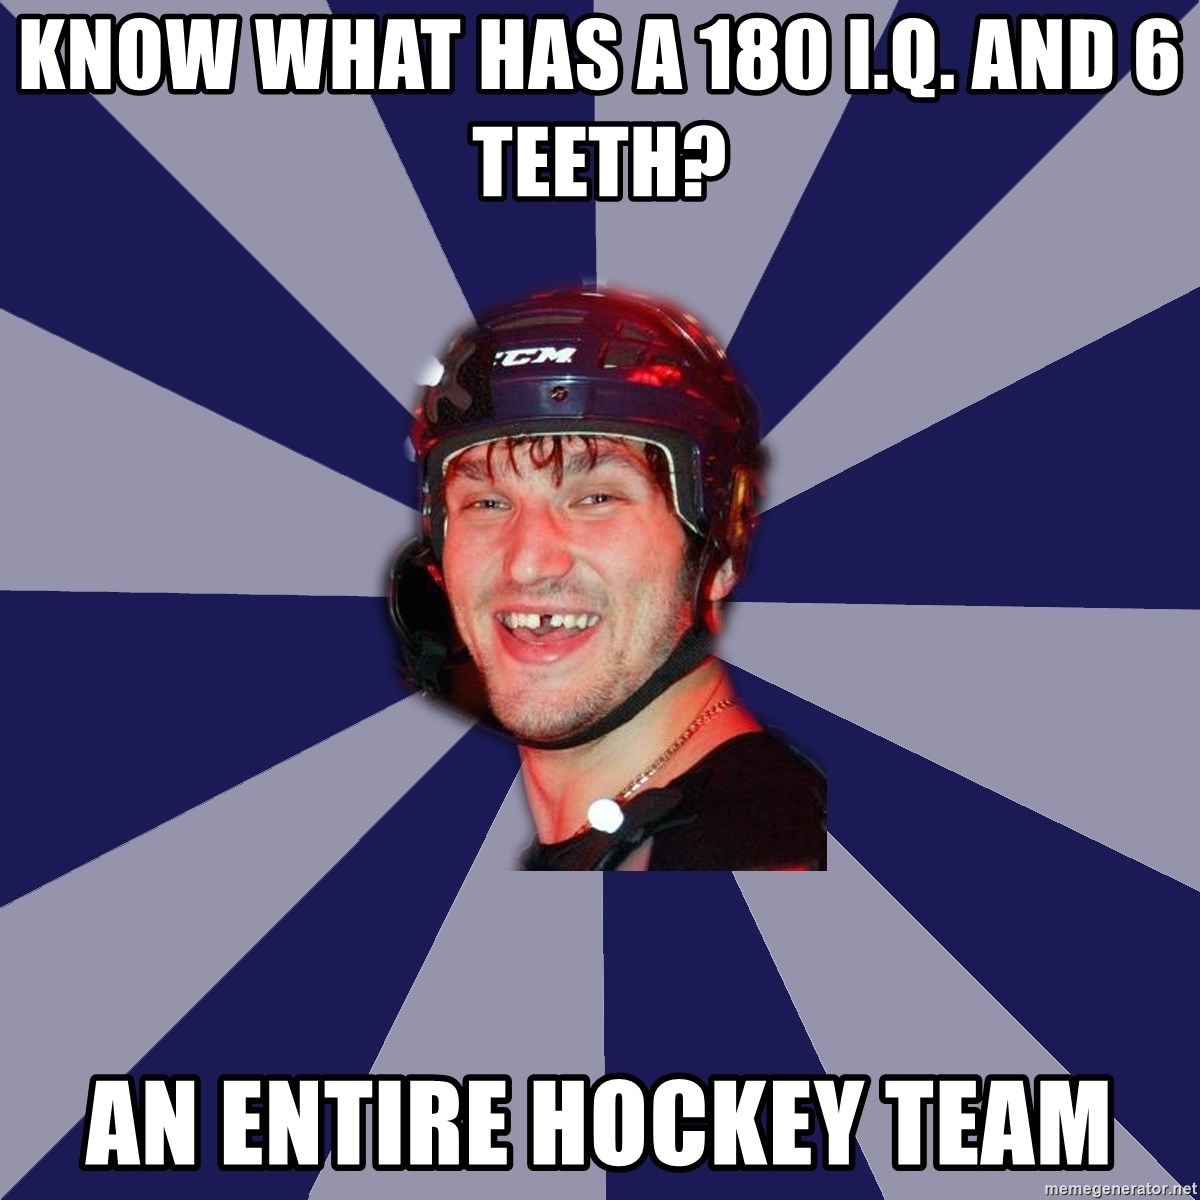 hockey player - Know what has a 180 I.Q. and 6 teeth? An entire Hockey team